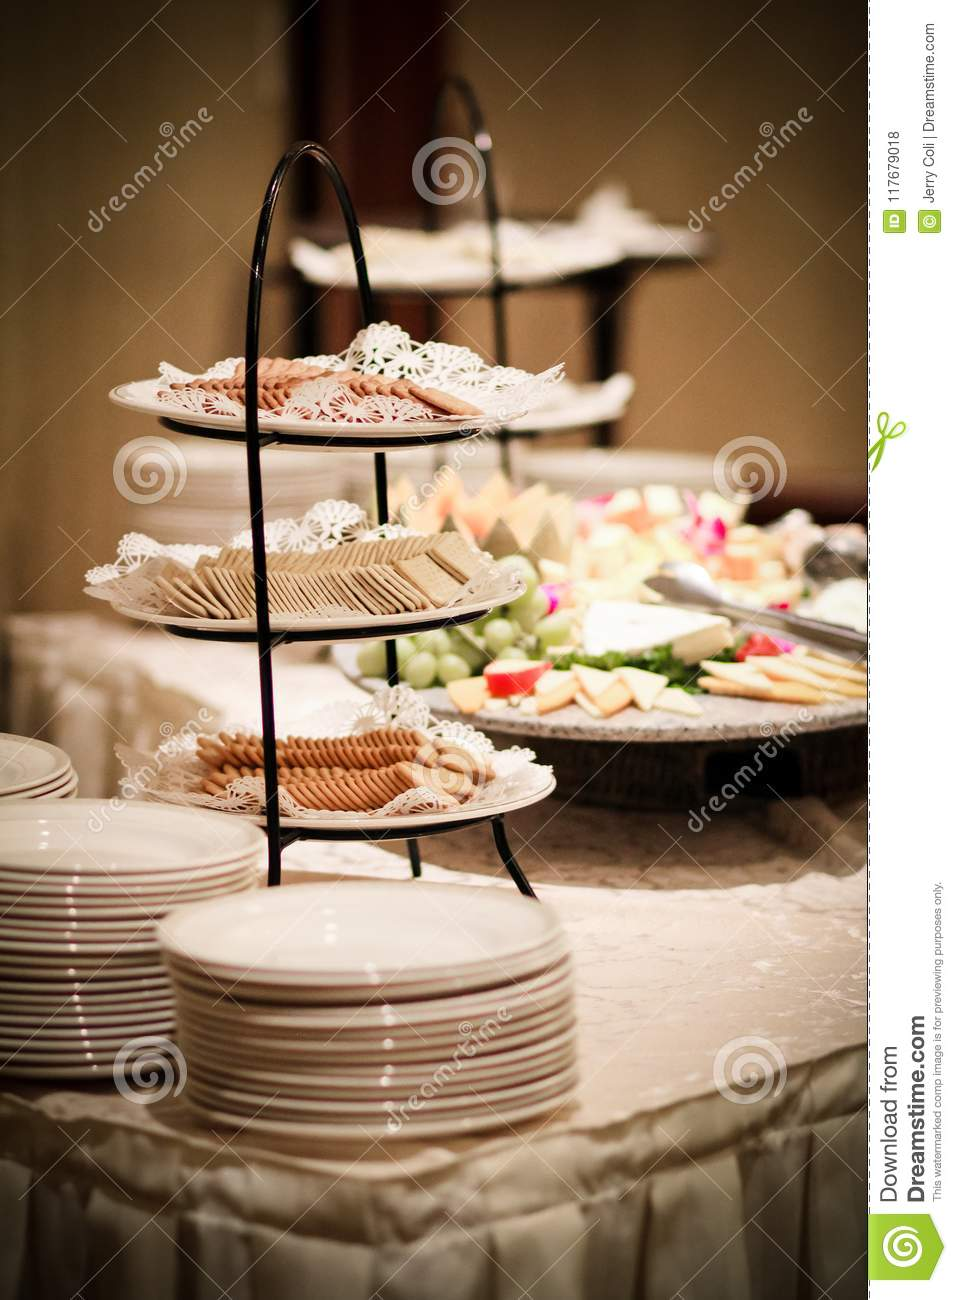 Appetizers At A Wedding Reception Stock Photo Image Of Grapes